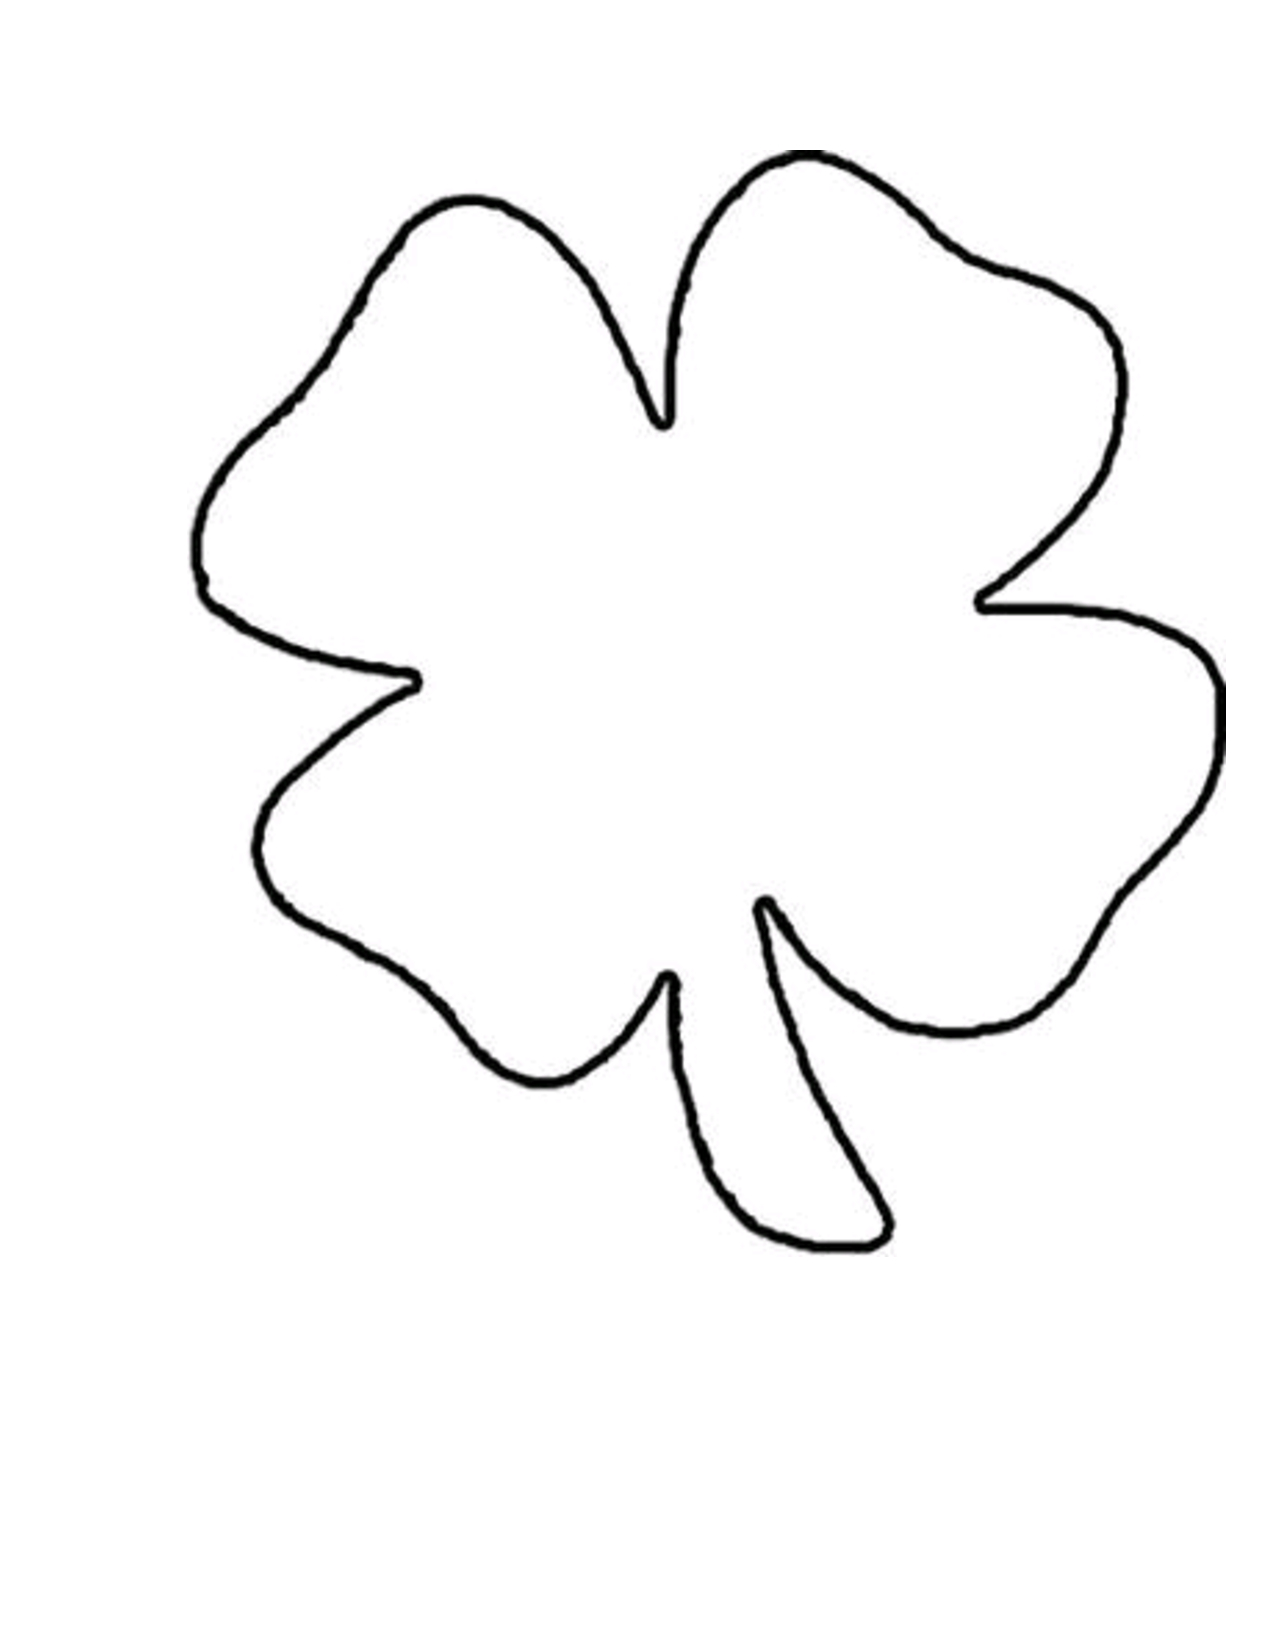 Shamrock Templates Printable | Shamrock Template | Crafts | Shamrock - Four Leaf Clover Template Printable Free